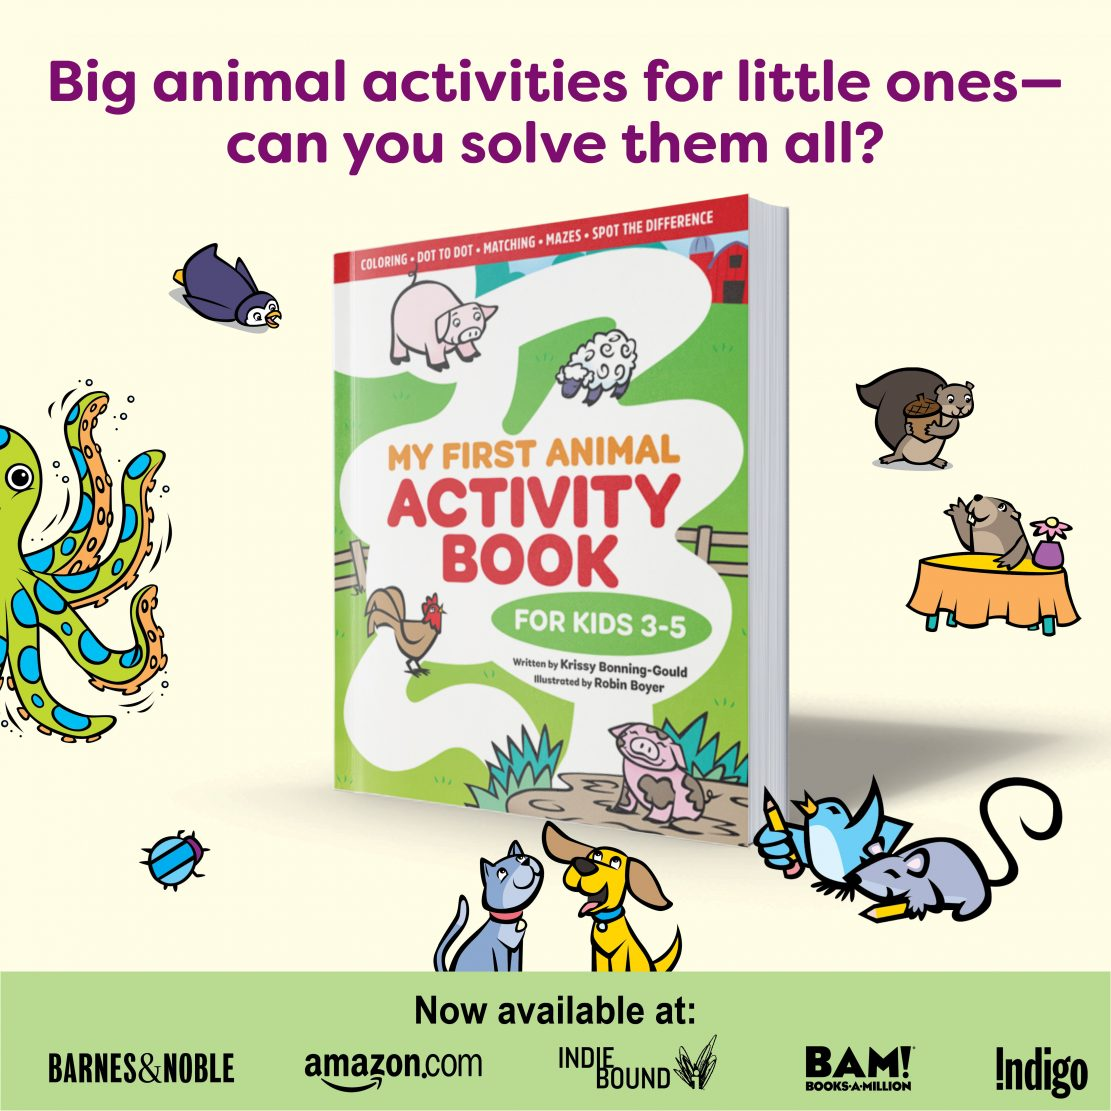 My First Animal Activity Book for Kids 3-5 by Krissy Bonning-Gould